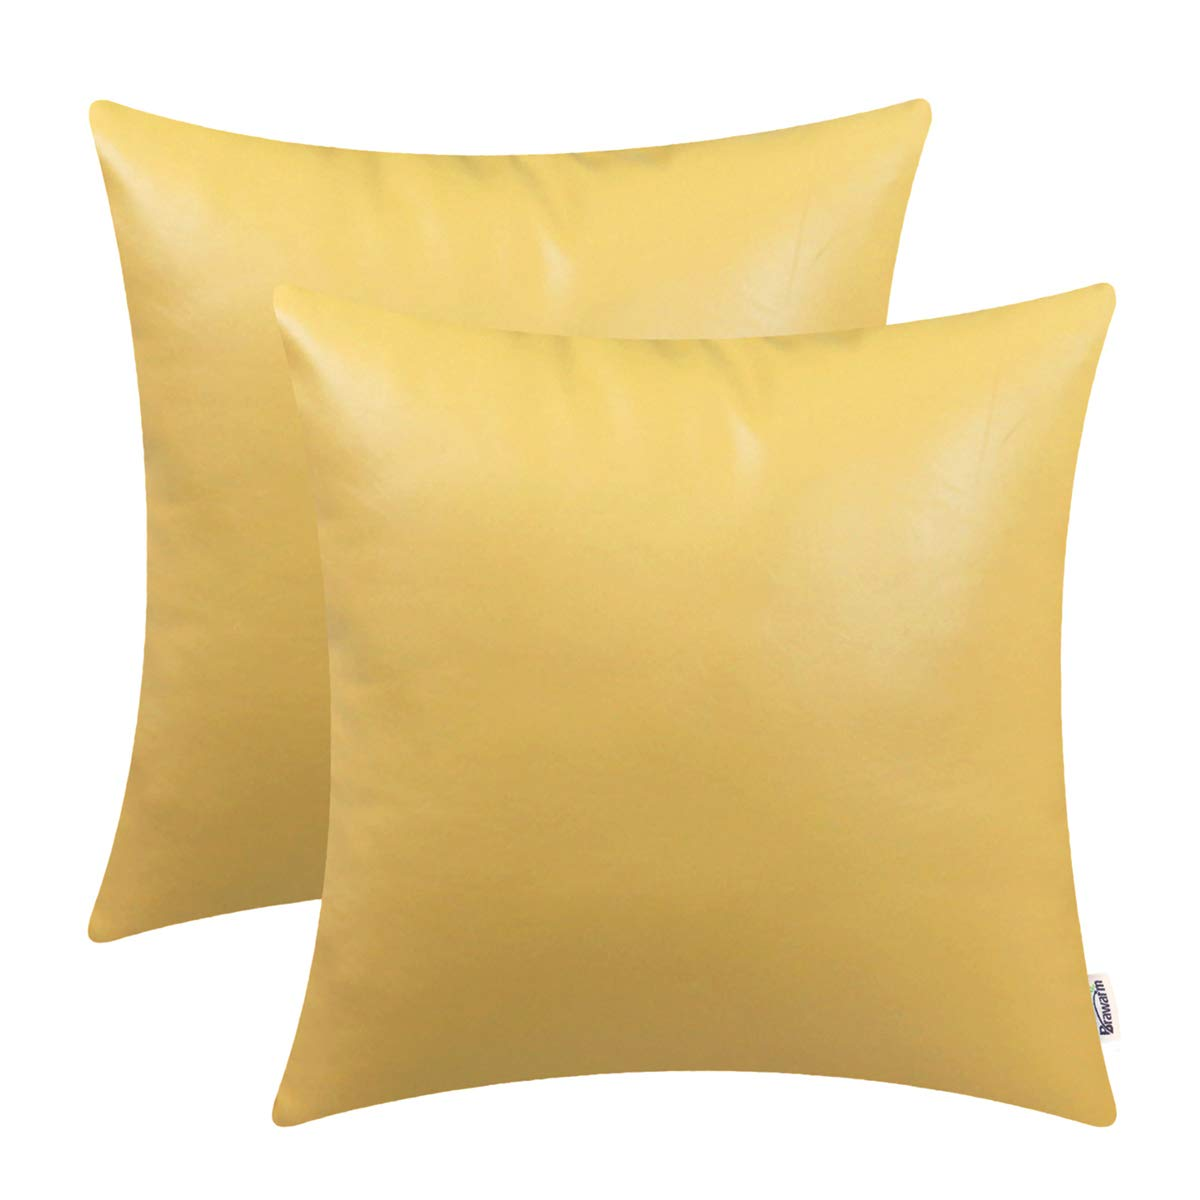 BRAWARM Pack of 2 Cozy Throw Pillow Covers Cases for Couch Sofa Home Decoration Solid Dyed Soft Faux Leather Both Sides 22 X 22 Inches Primrose Yellow